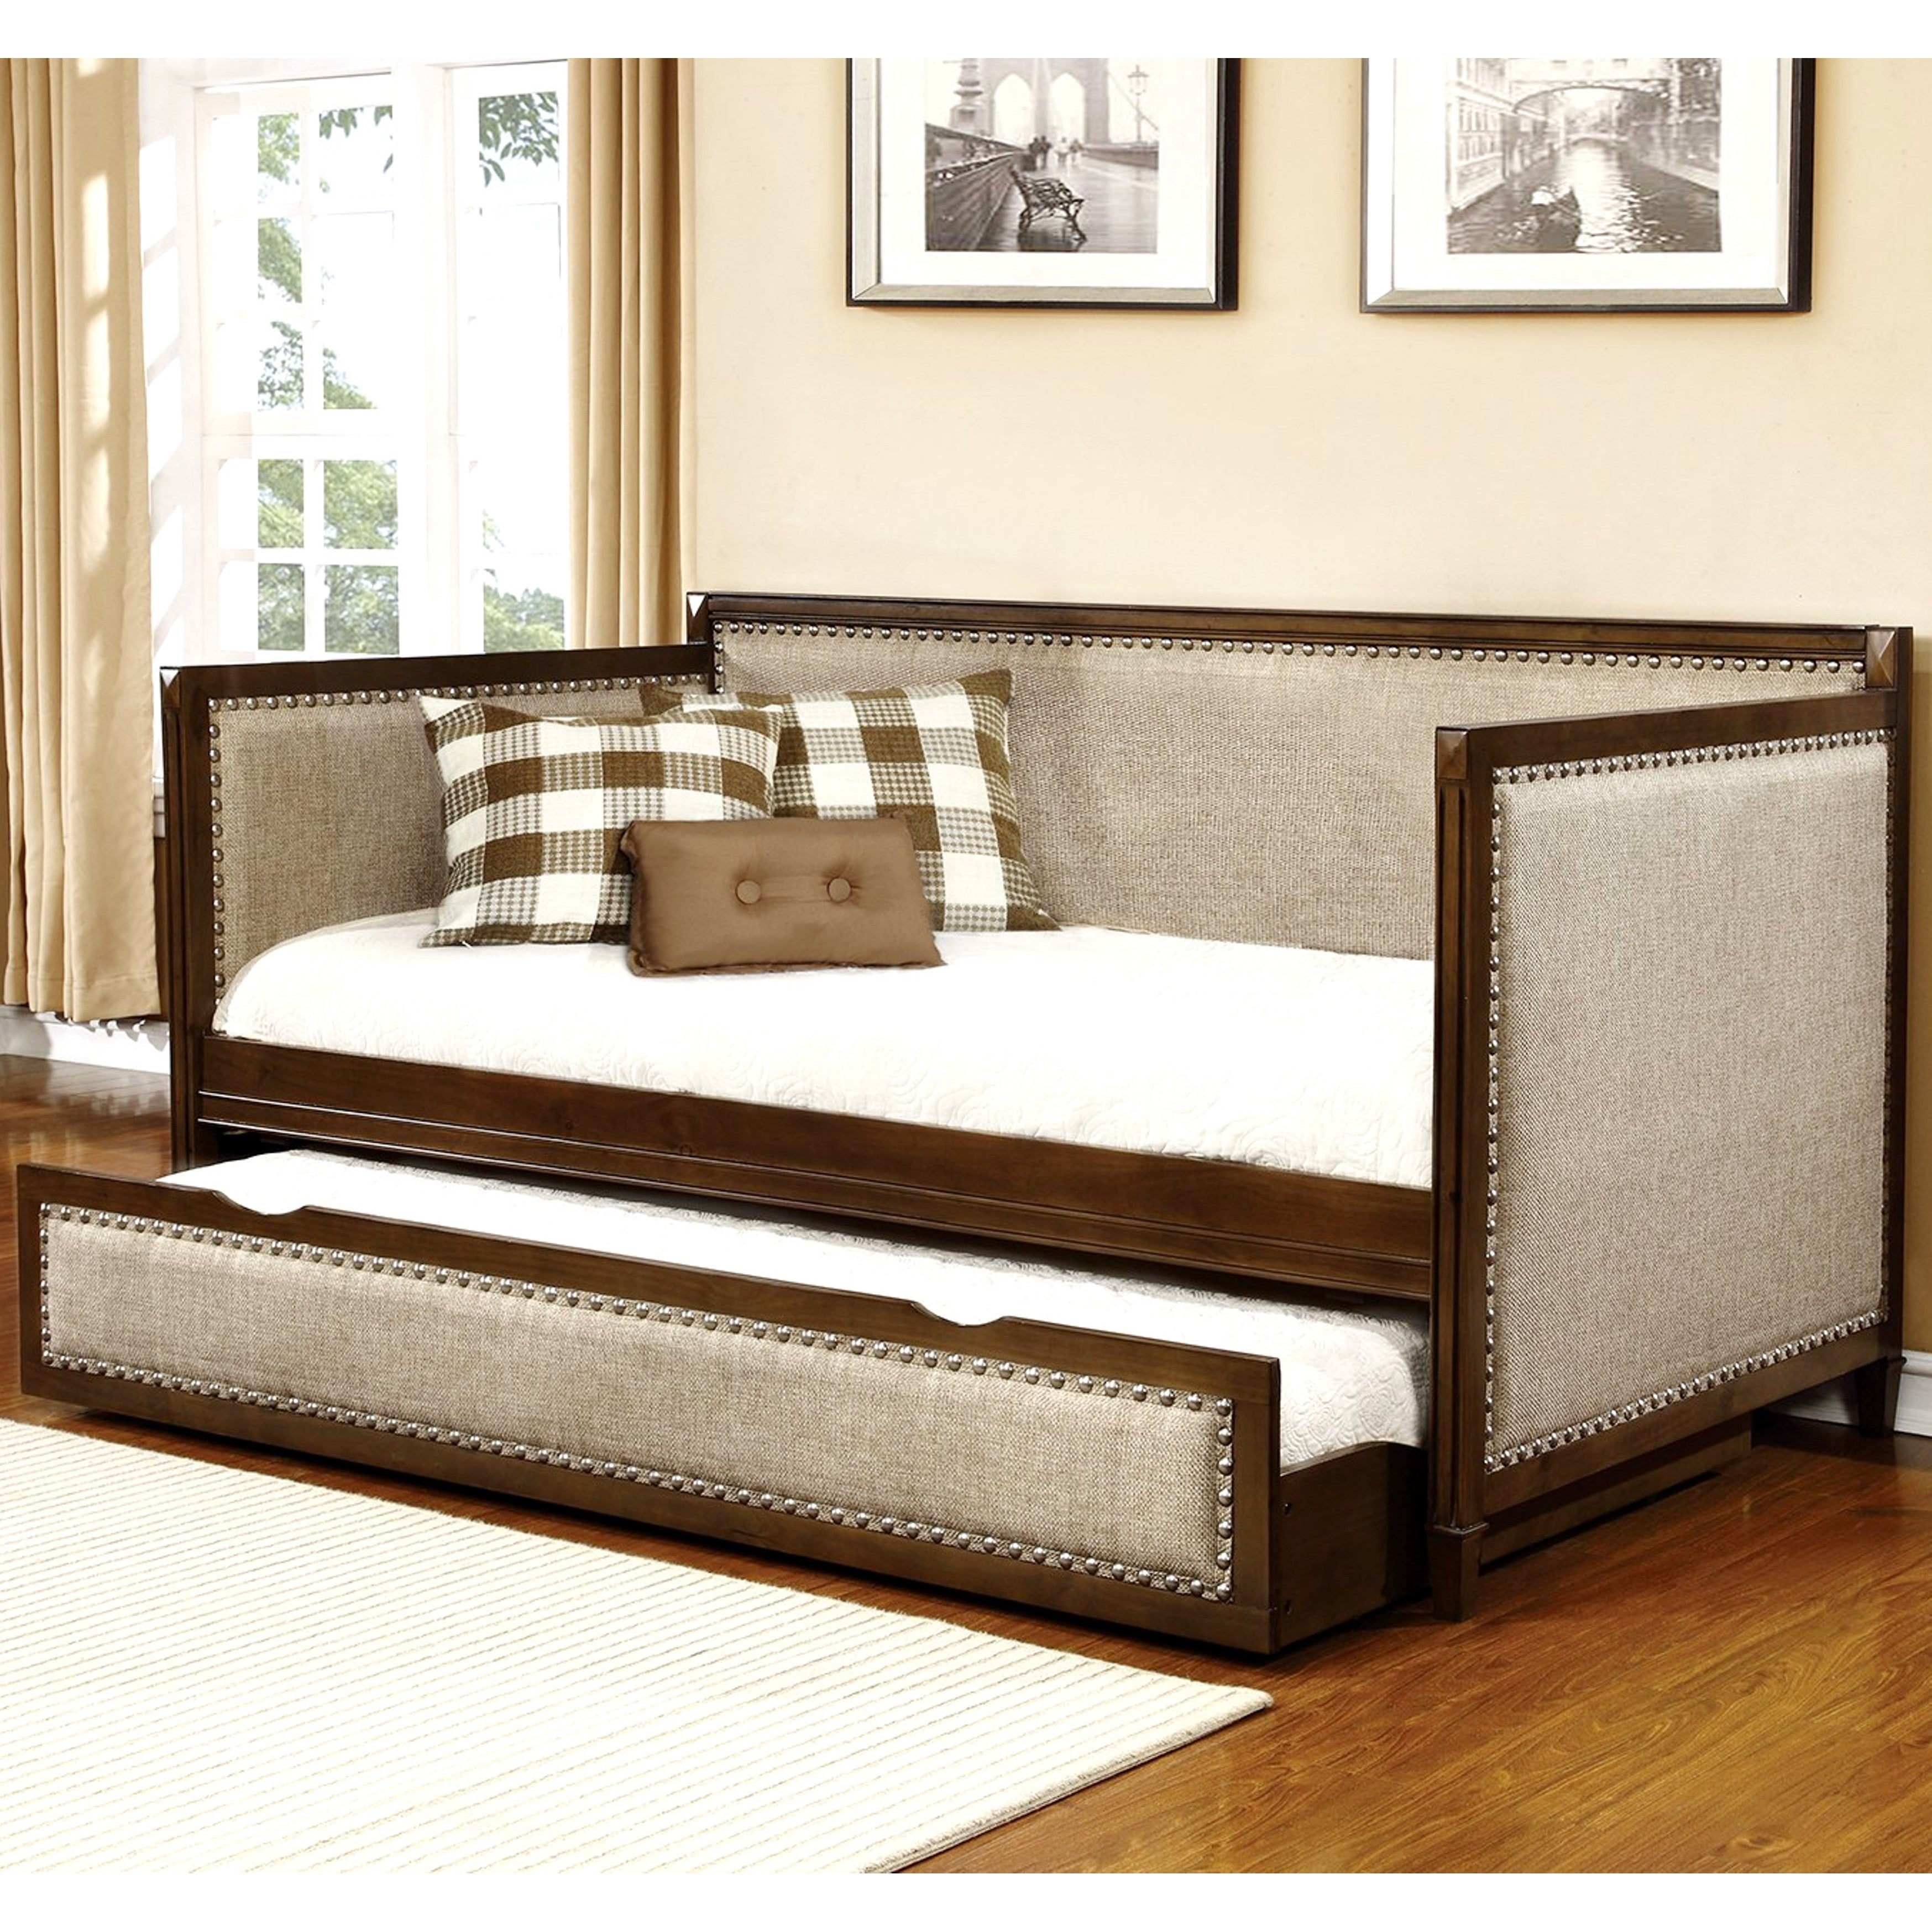 Shop Classic Nailhead Trim Design Upholstered Twin Daybed With Trundle    Free Shipping Today   Overstock.com   14283223